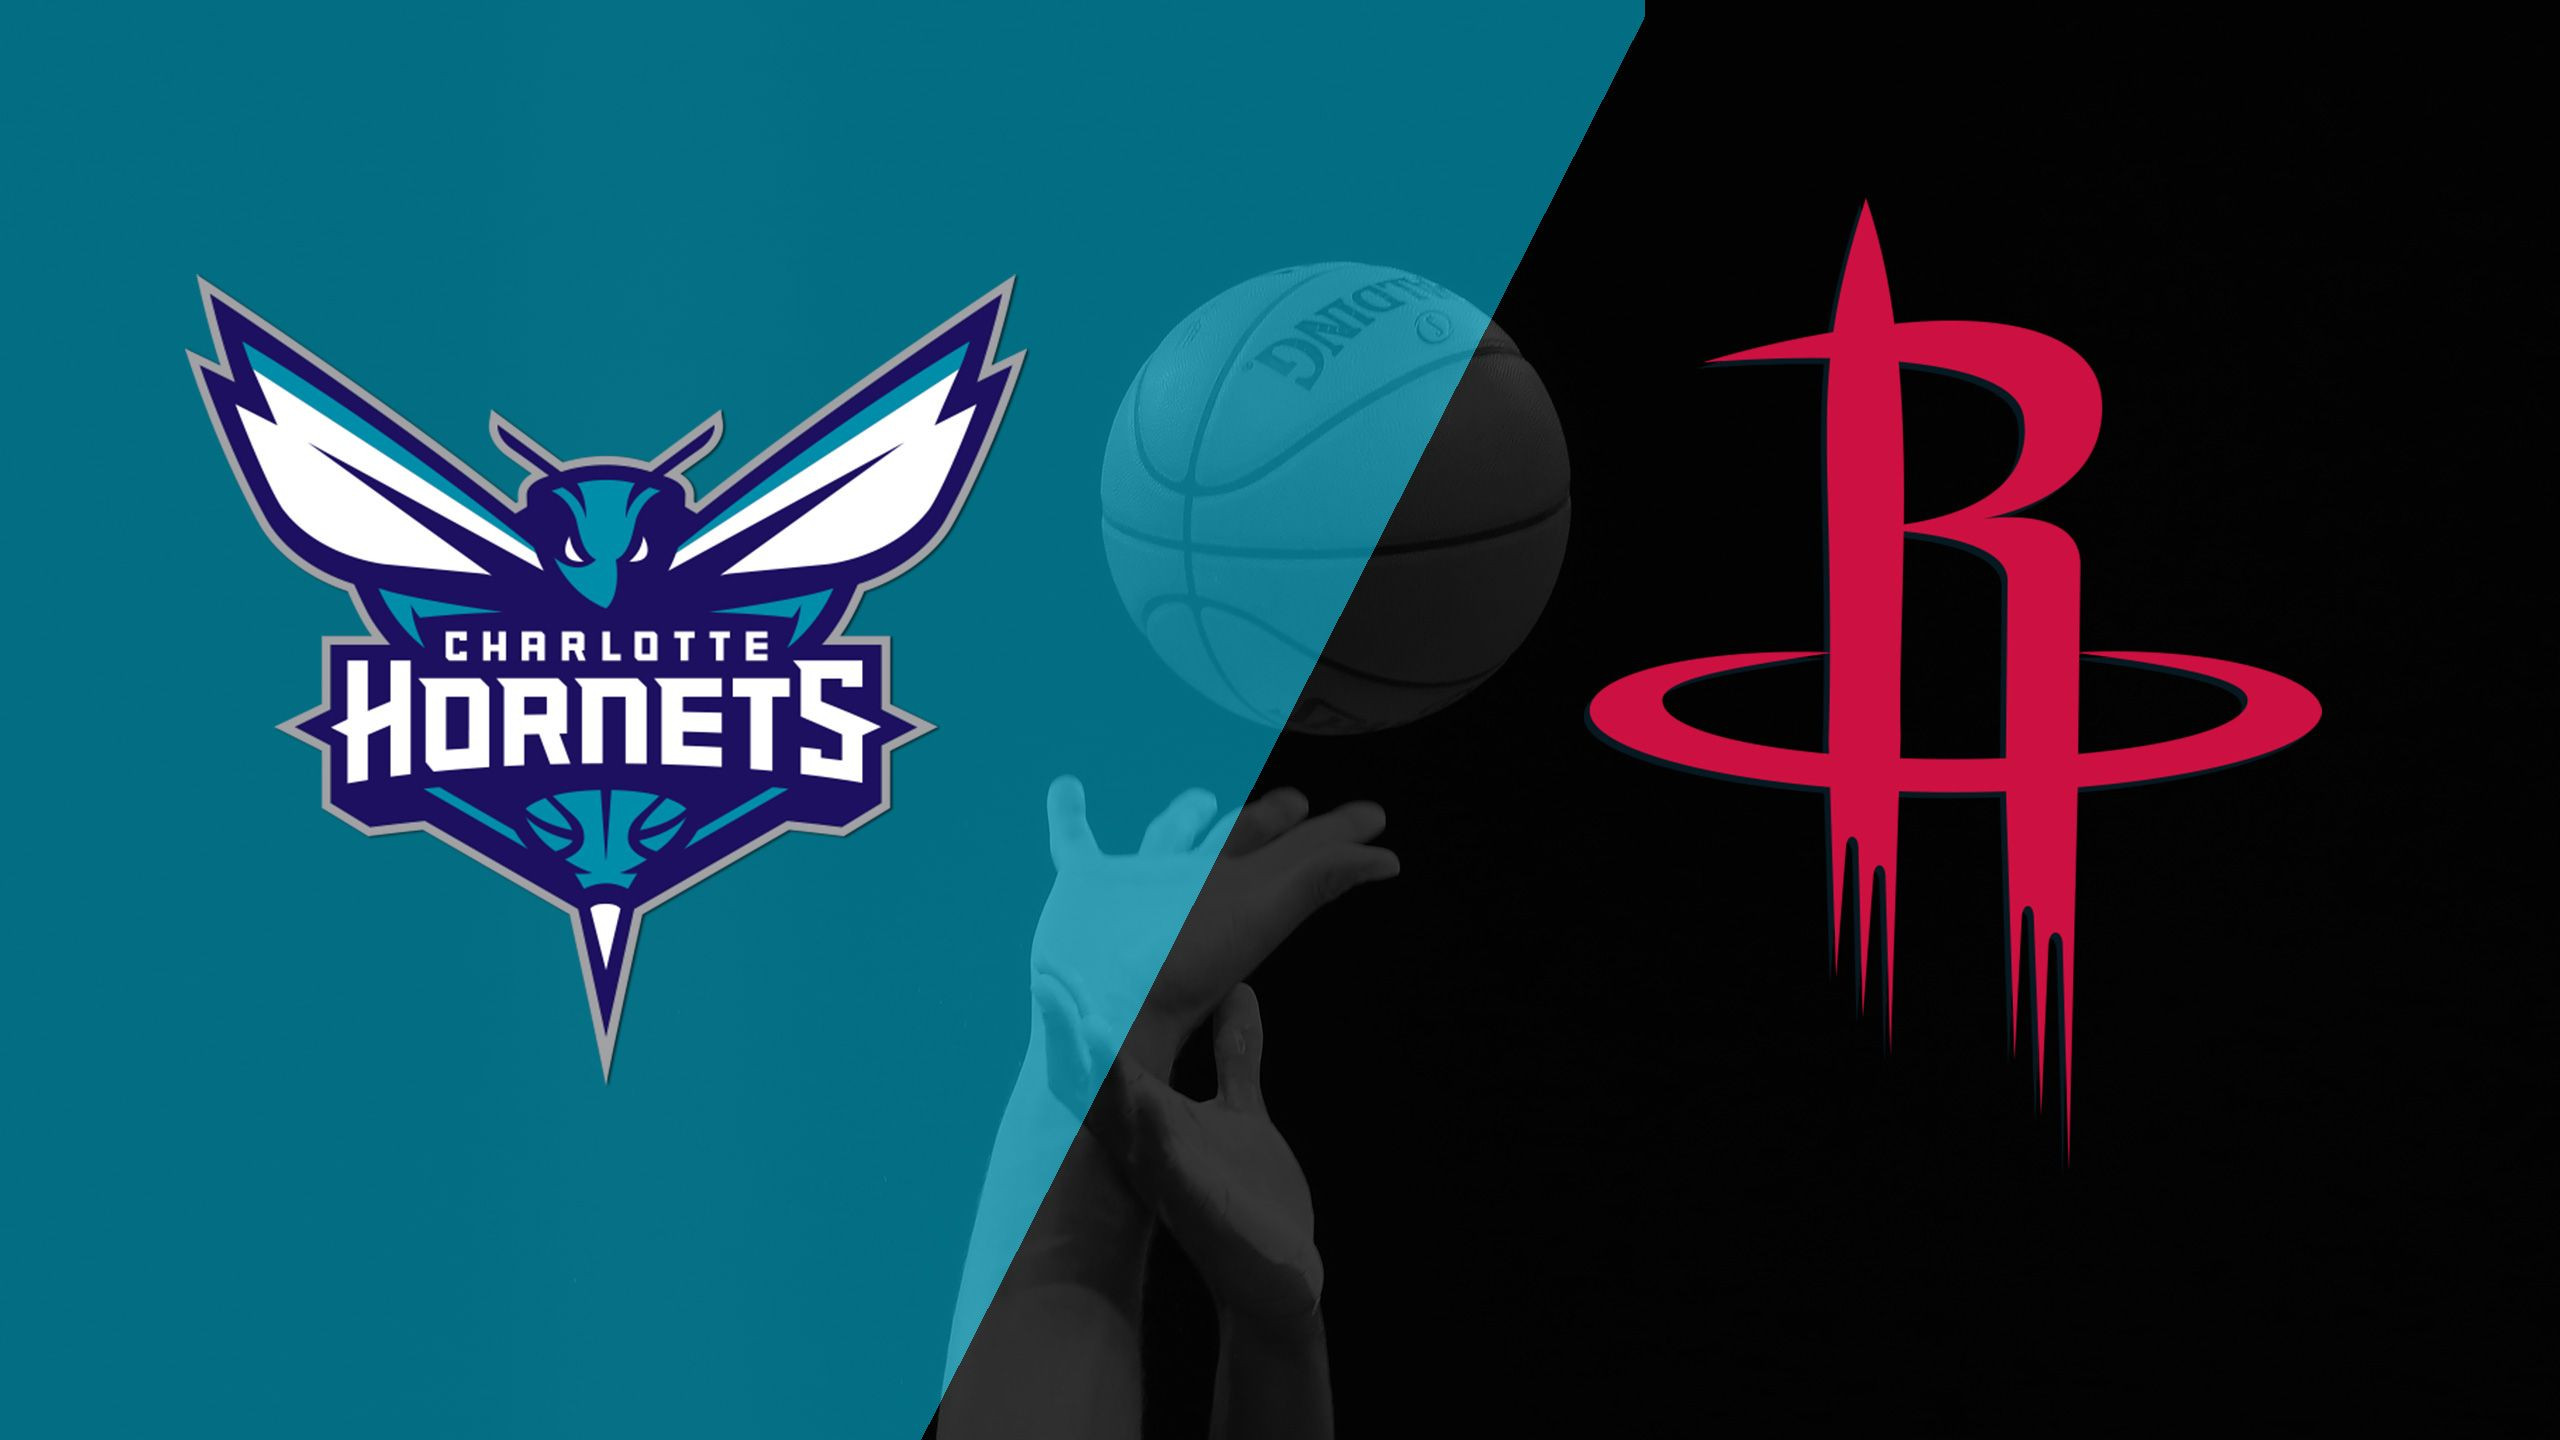 In Spanish - Charlotte Hornets vs. Houston Rockets